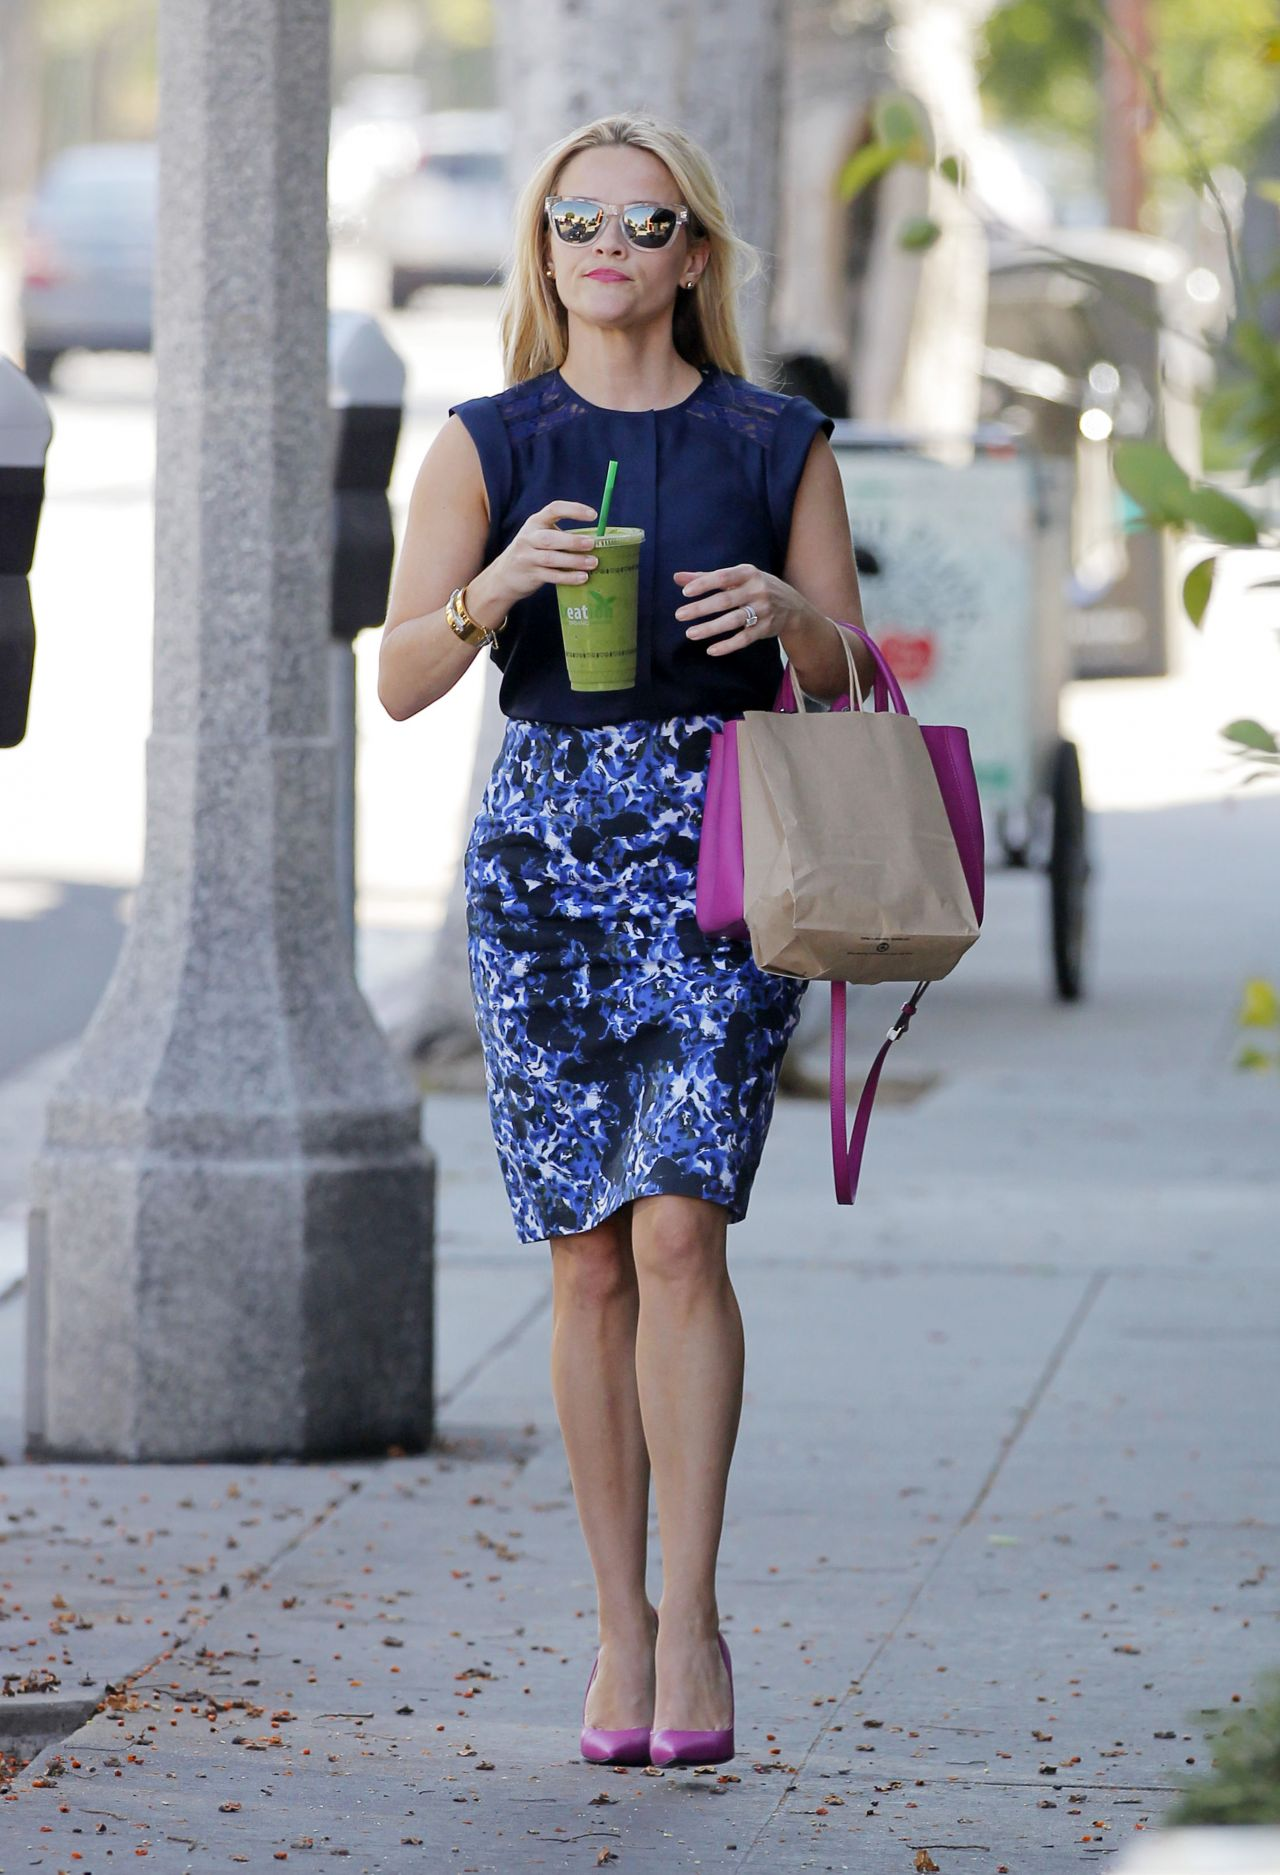 Reese Witherspoon Jim Toth Reese Witherspoon Summ...